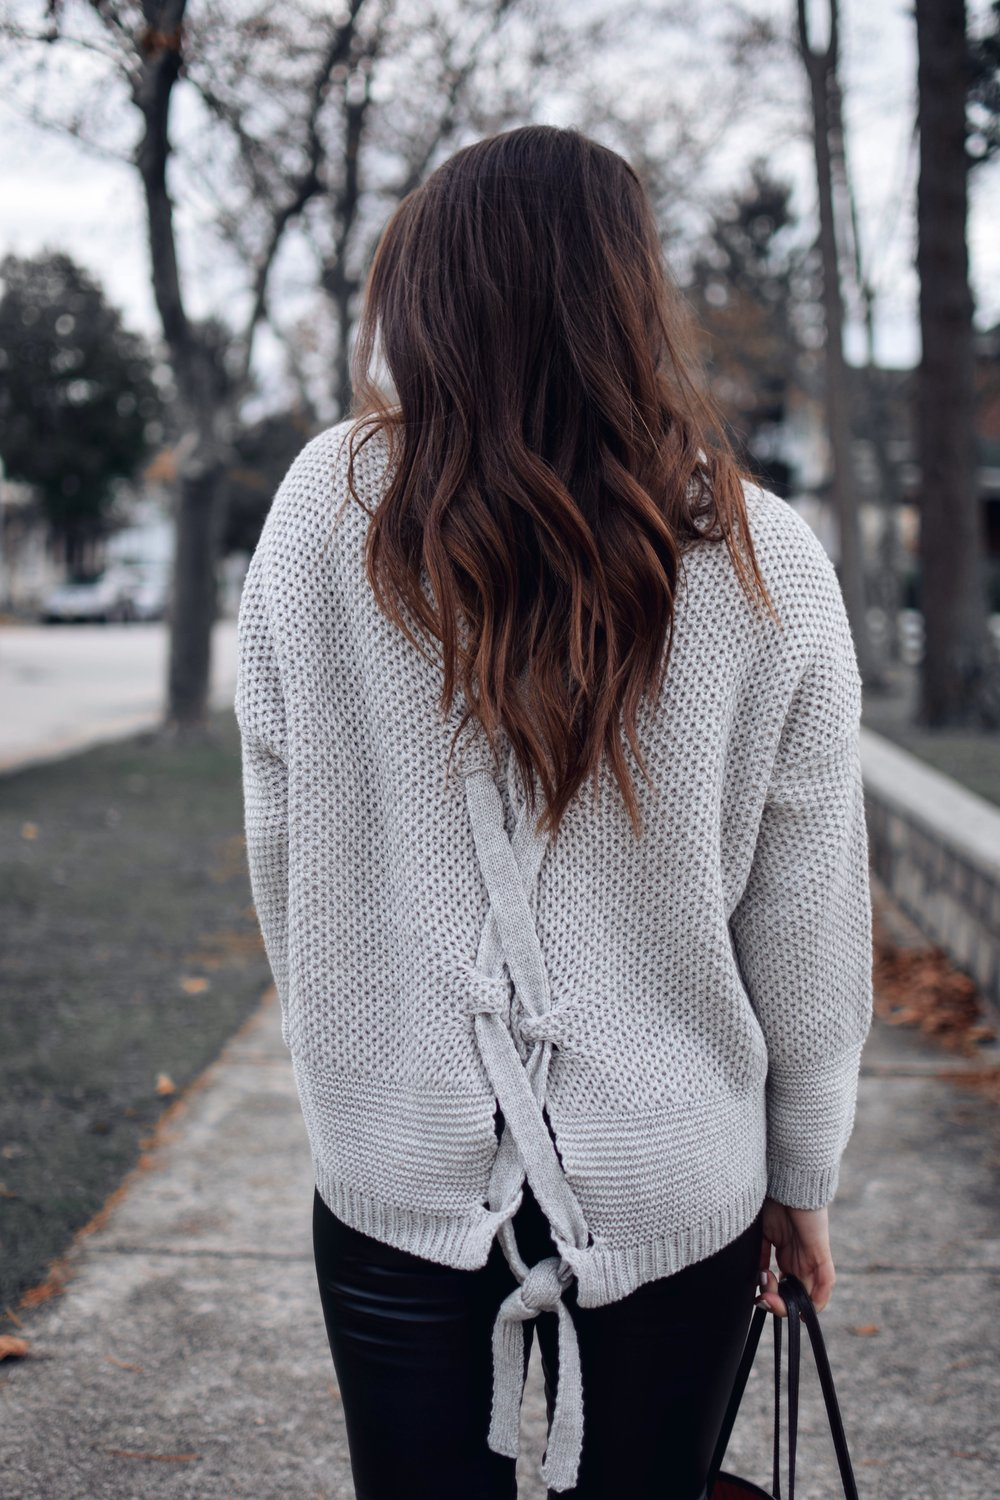 My Outfits On Sale | Pine Barren Beauty | black Friday sales, lace up sweater, fall outfit idea, winter outfit idea, hair goals